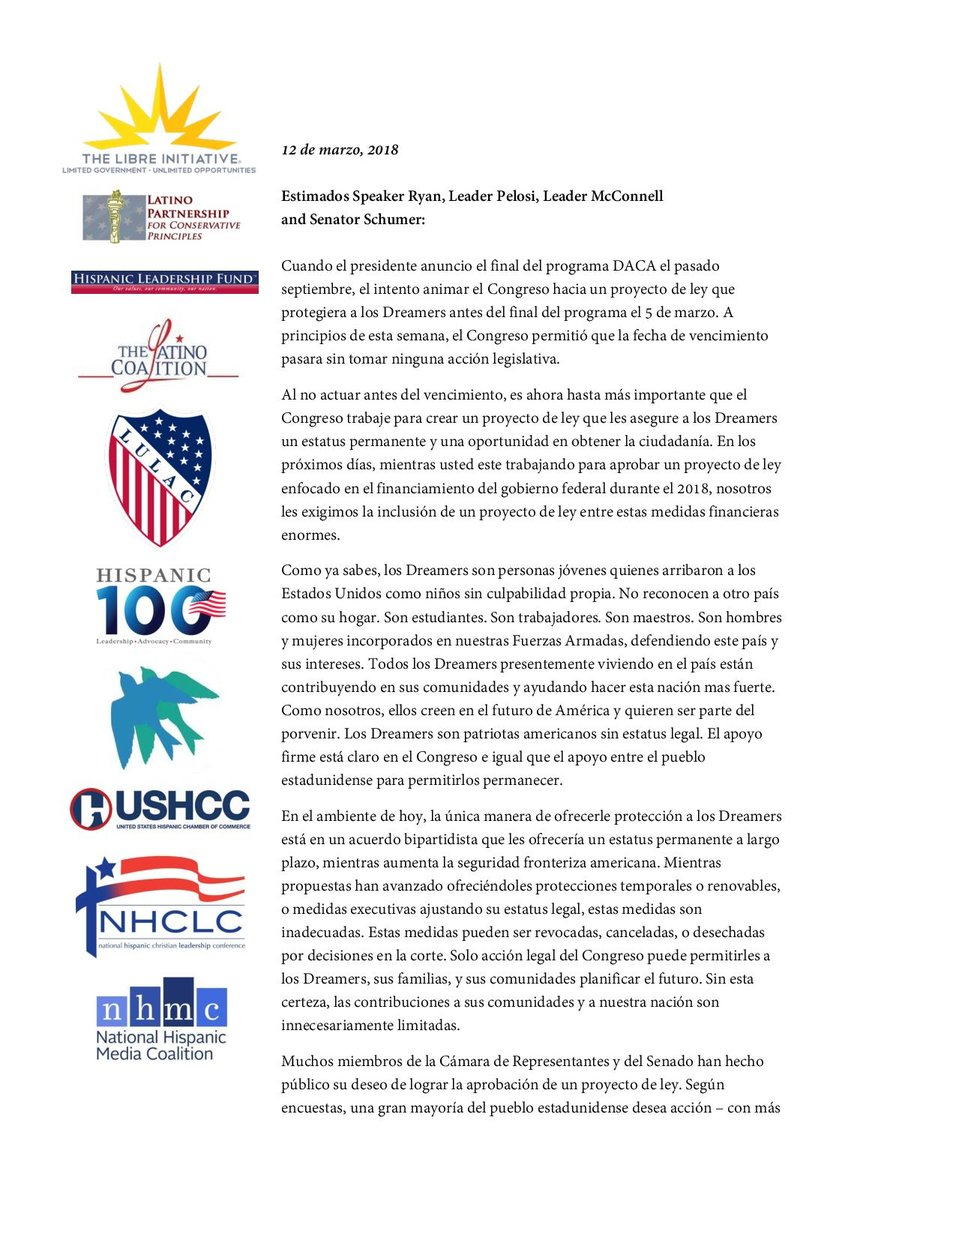 DACA Coalition Letter